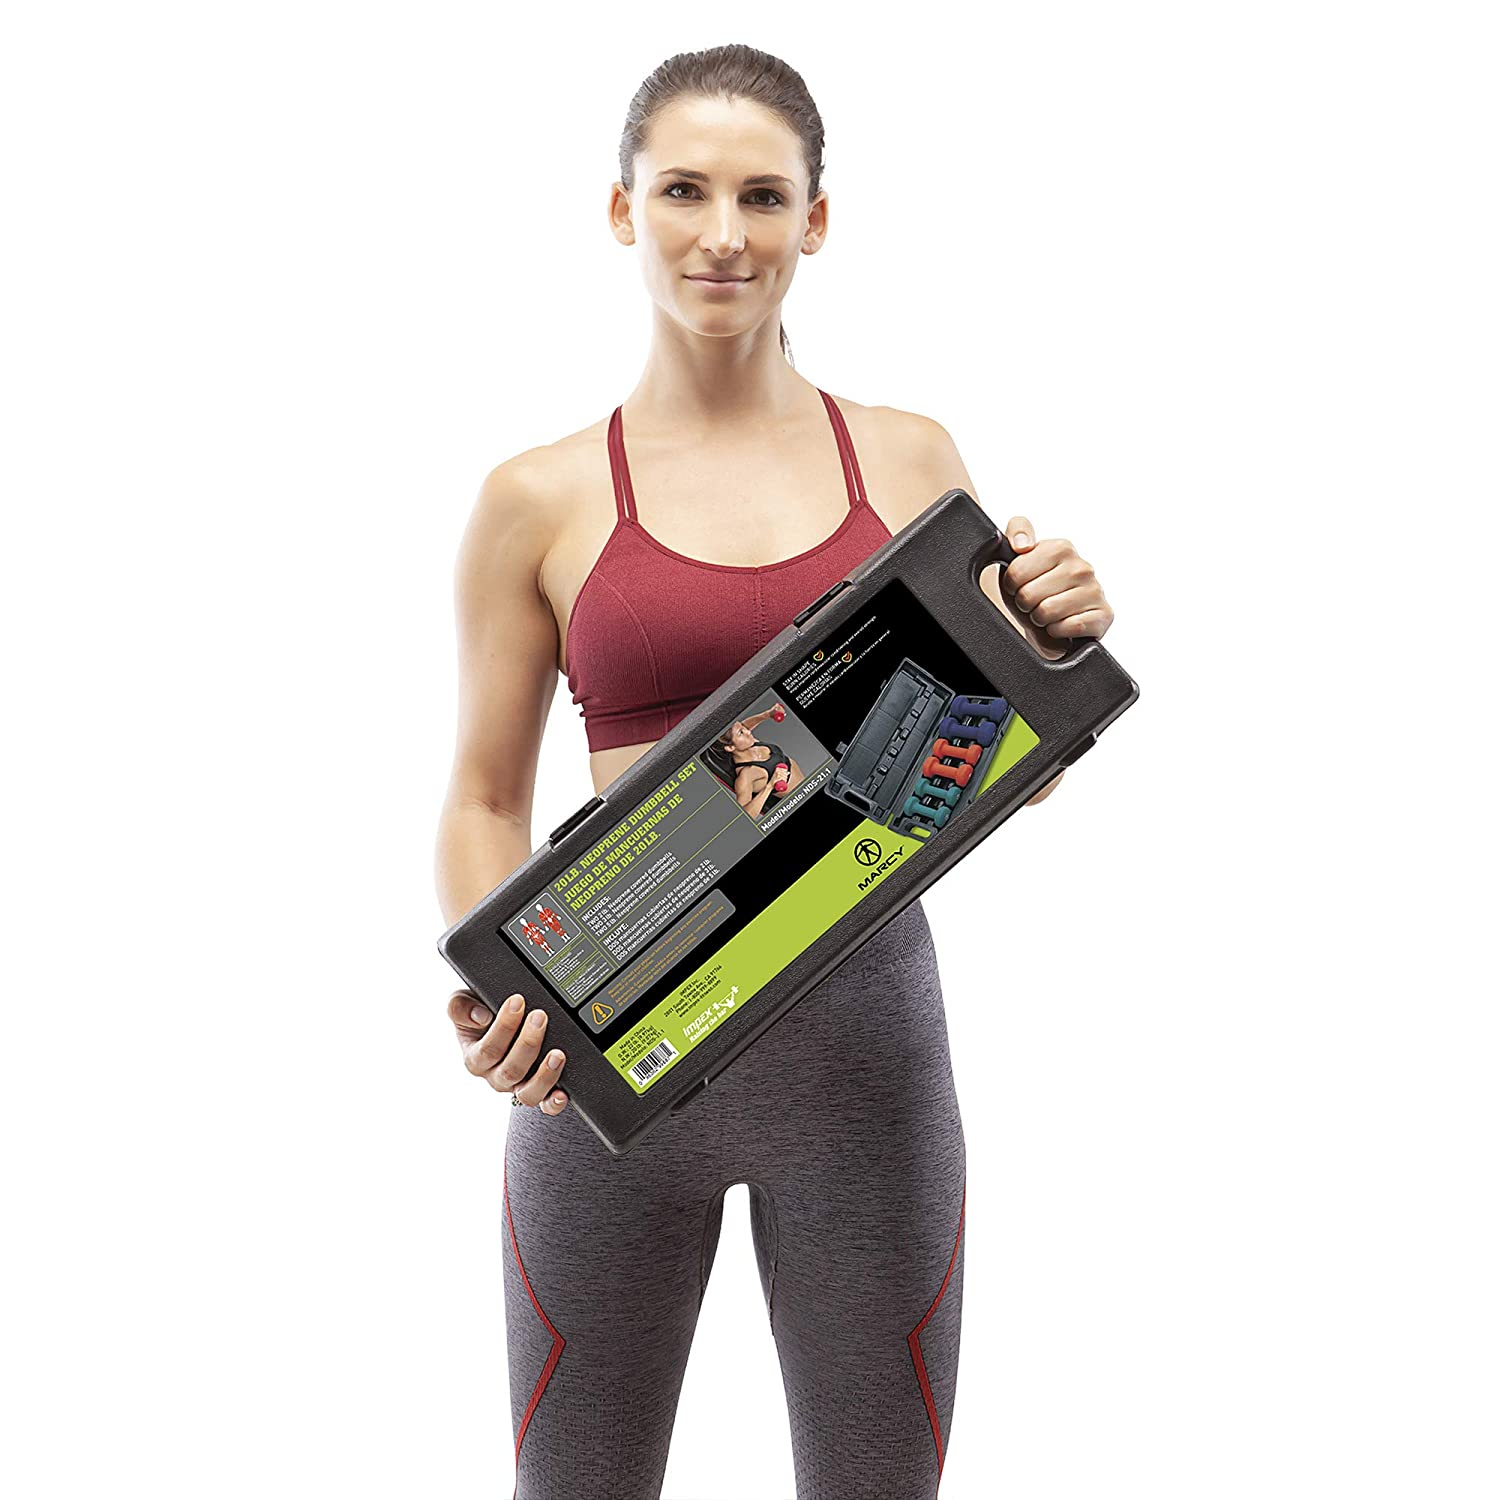 Marcy Neoprene Dumbbell Set 3 Pairs with Carrying Case NDS-21.1